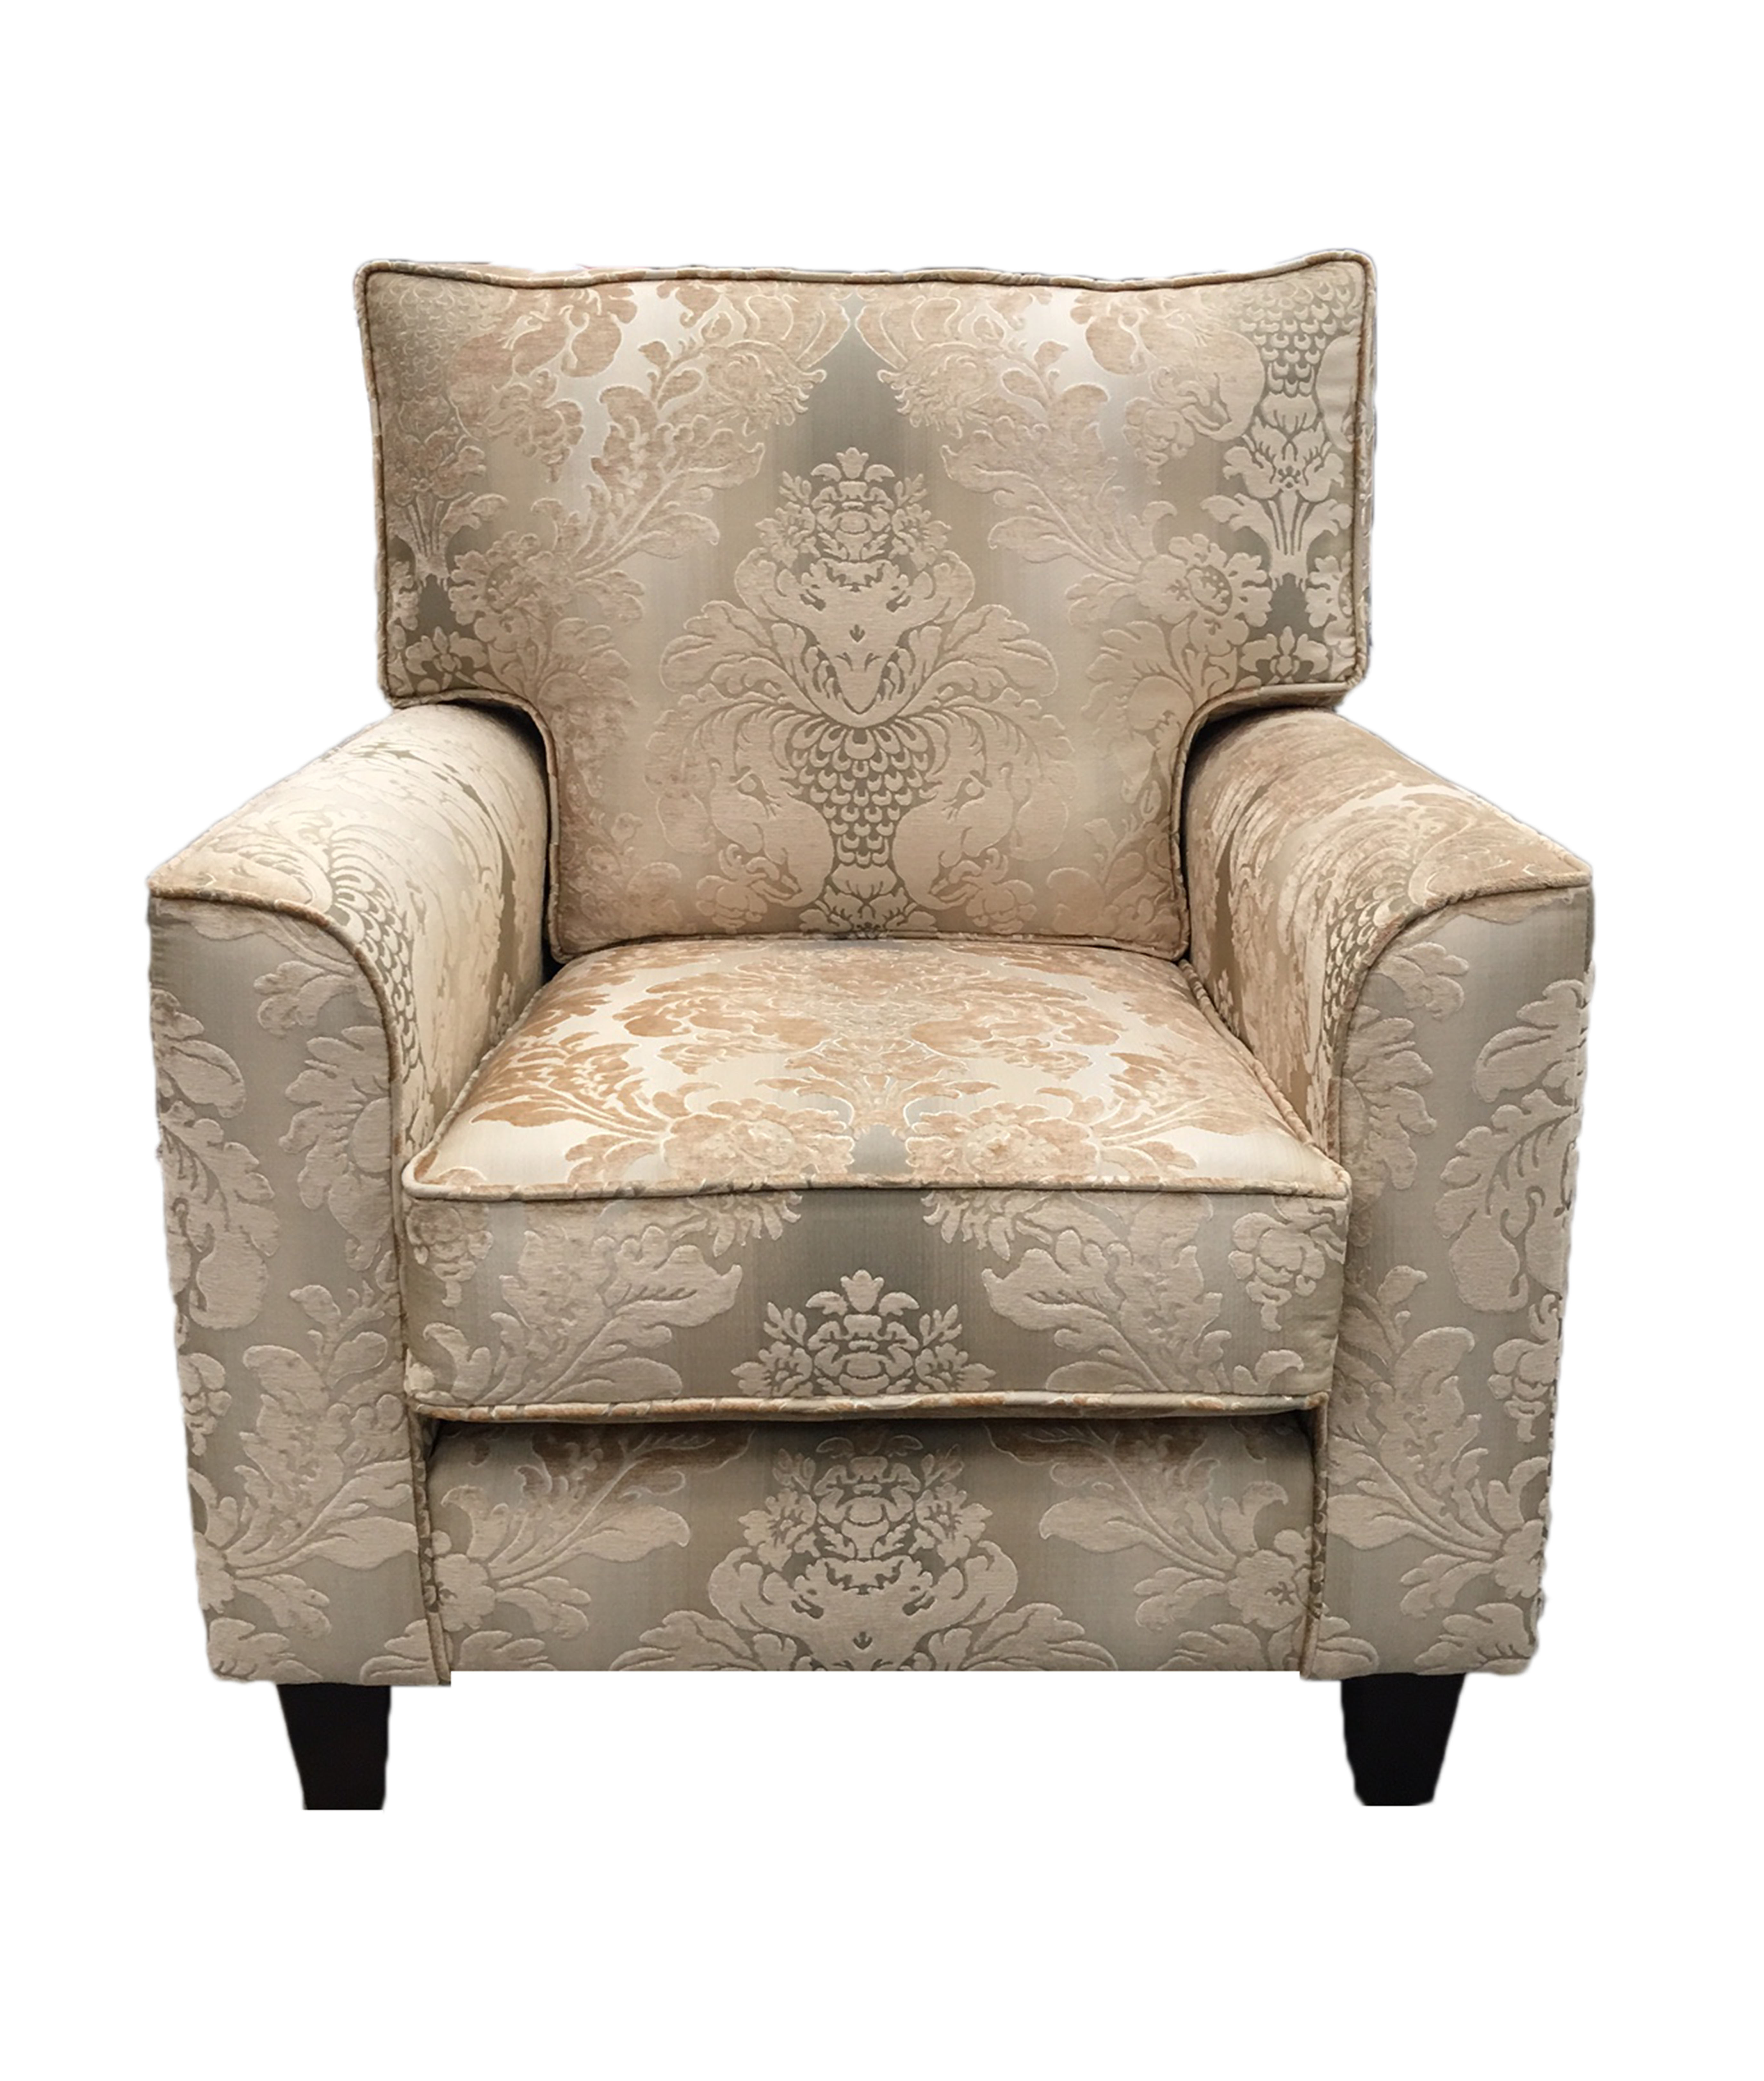 Leon S Furniture Sectional Sofas: Sofas And Chairs Range